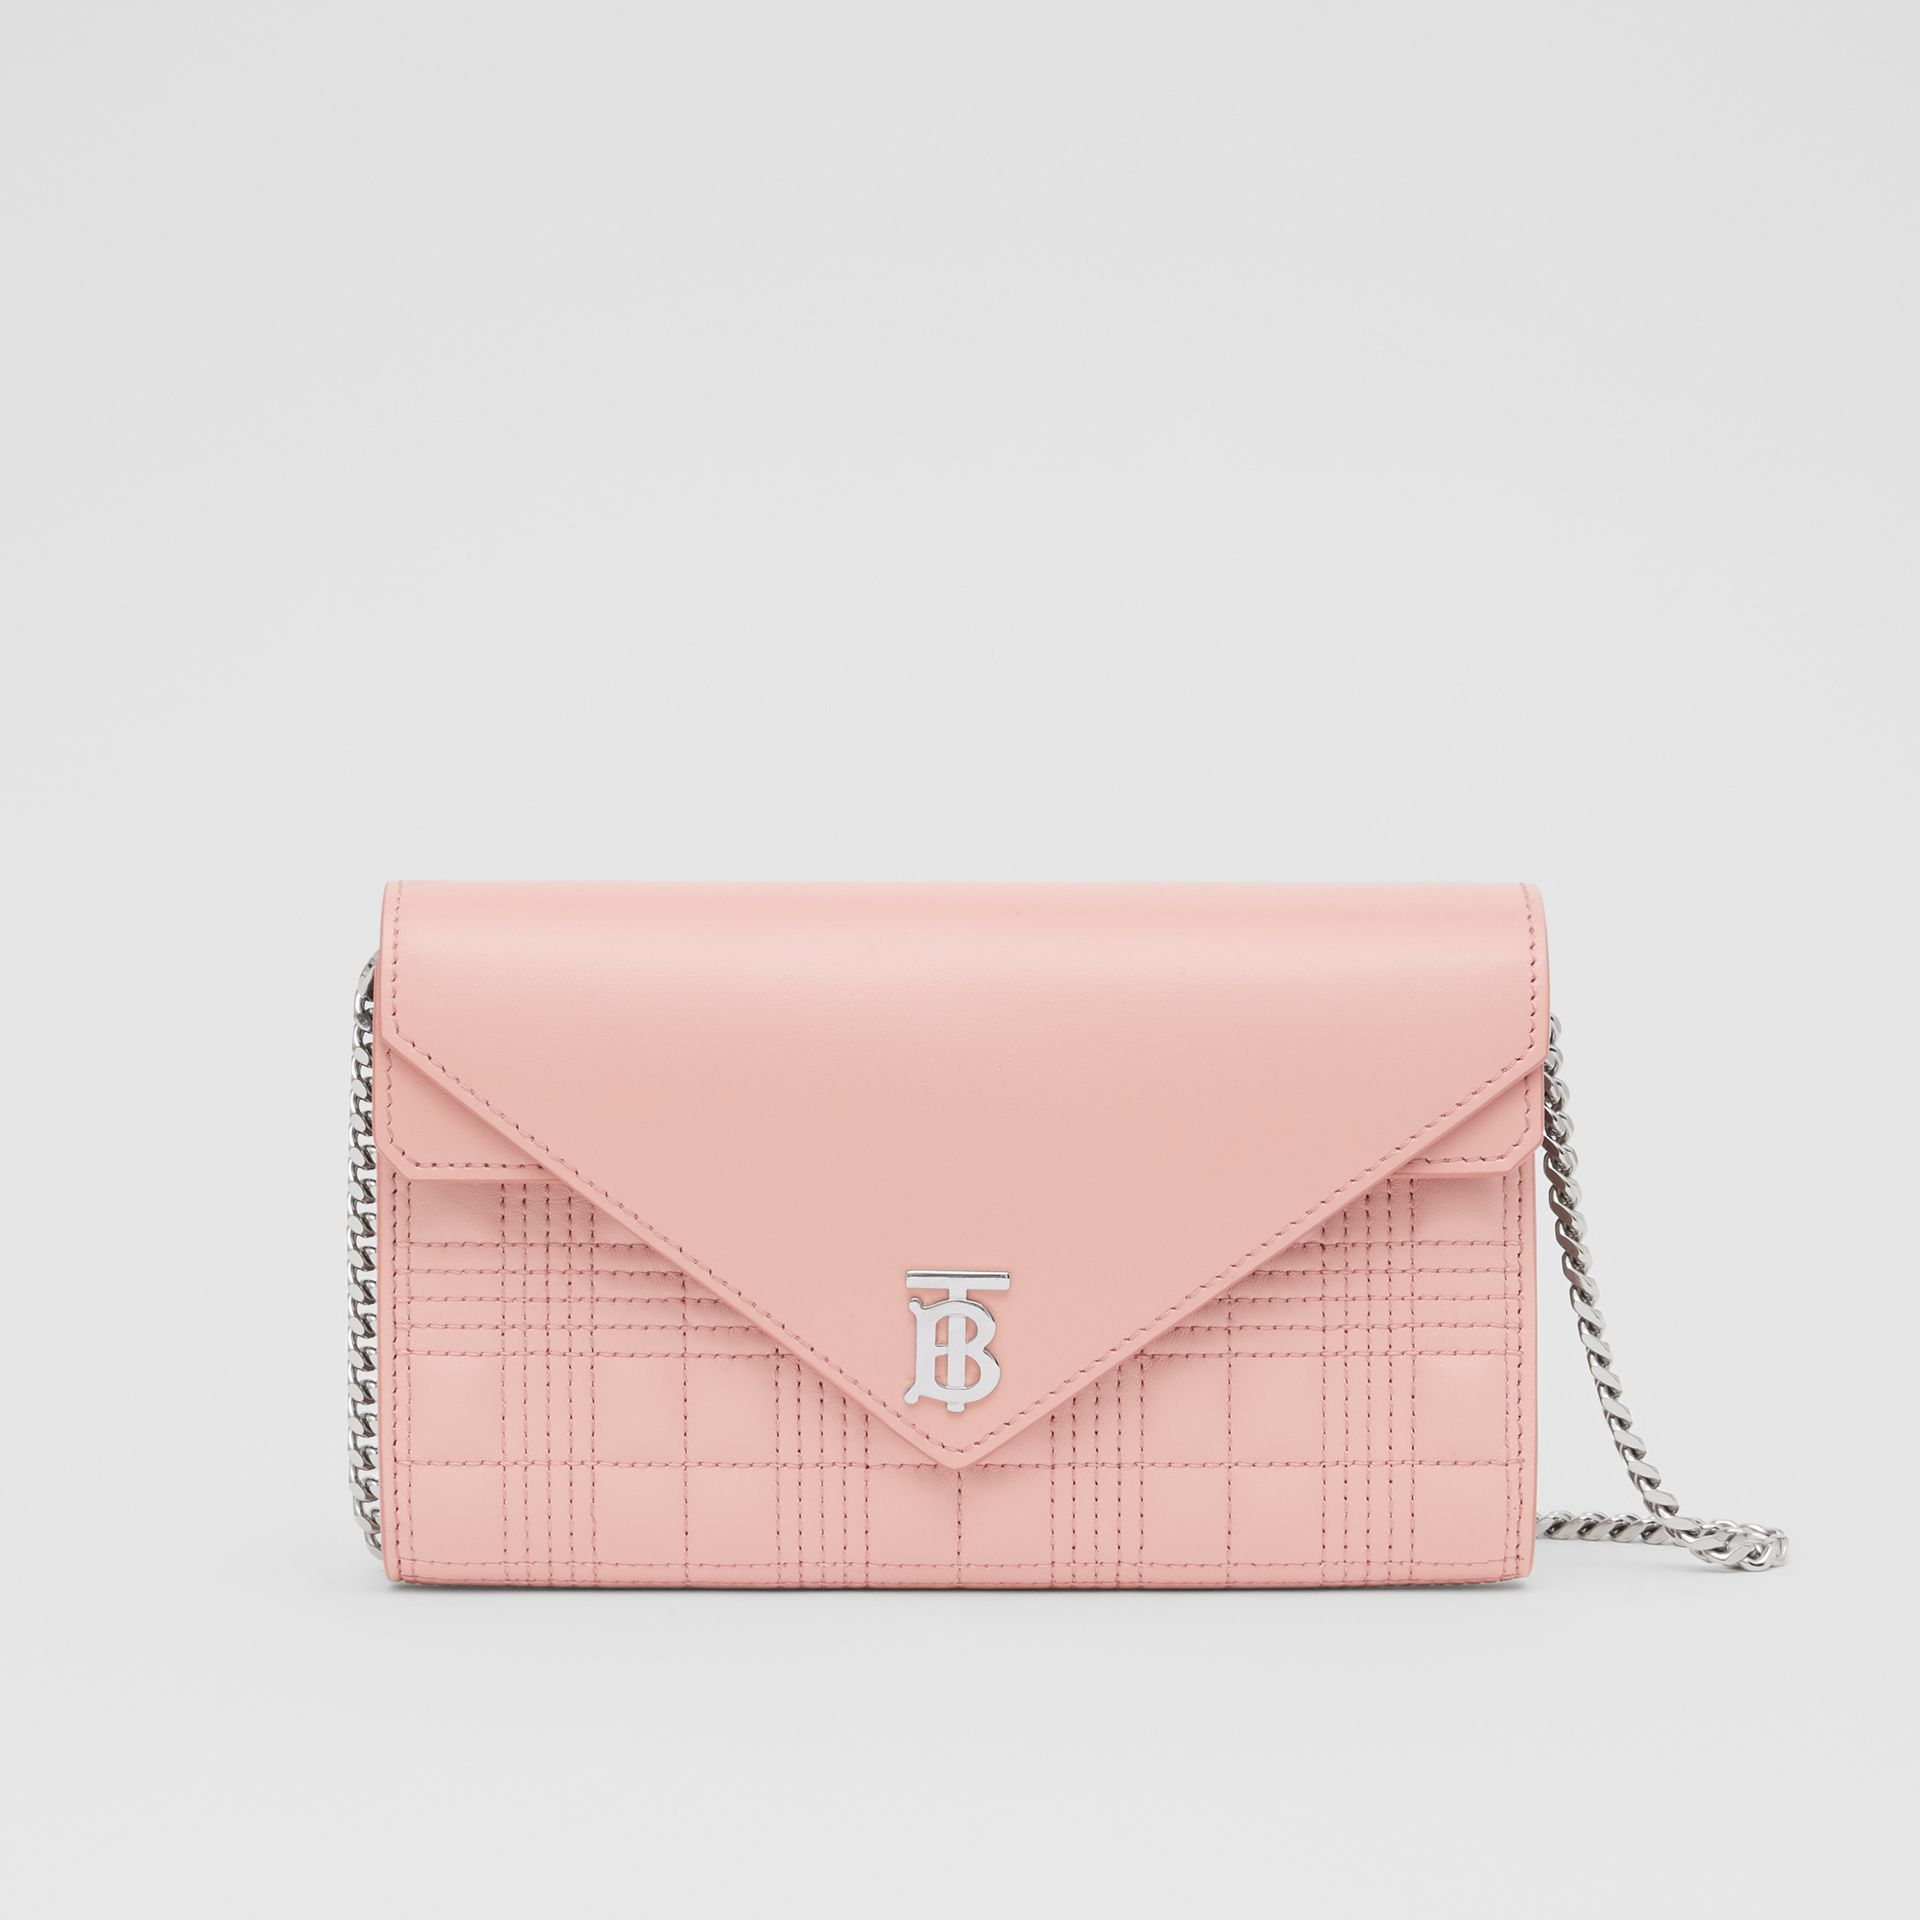 Quilted Lambskin Wallet with Detachable Chain Strap in Blush Pink - Women | Burberry - gallery image 0